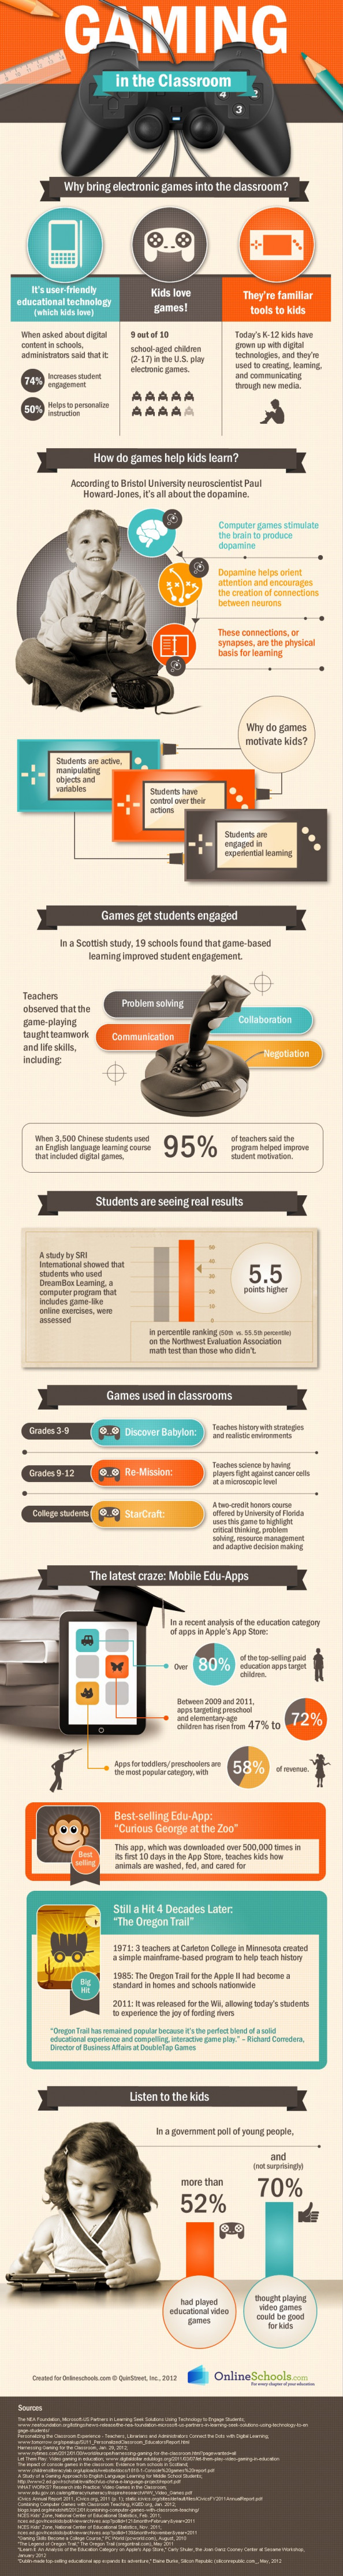 Can Gaming Help Kids Learn? Infographic